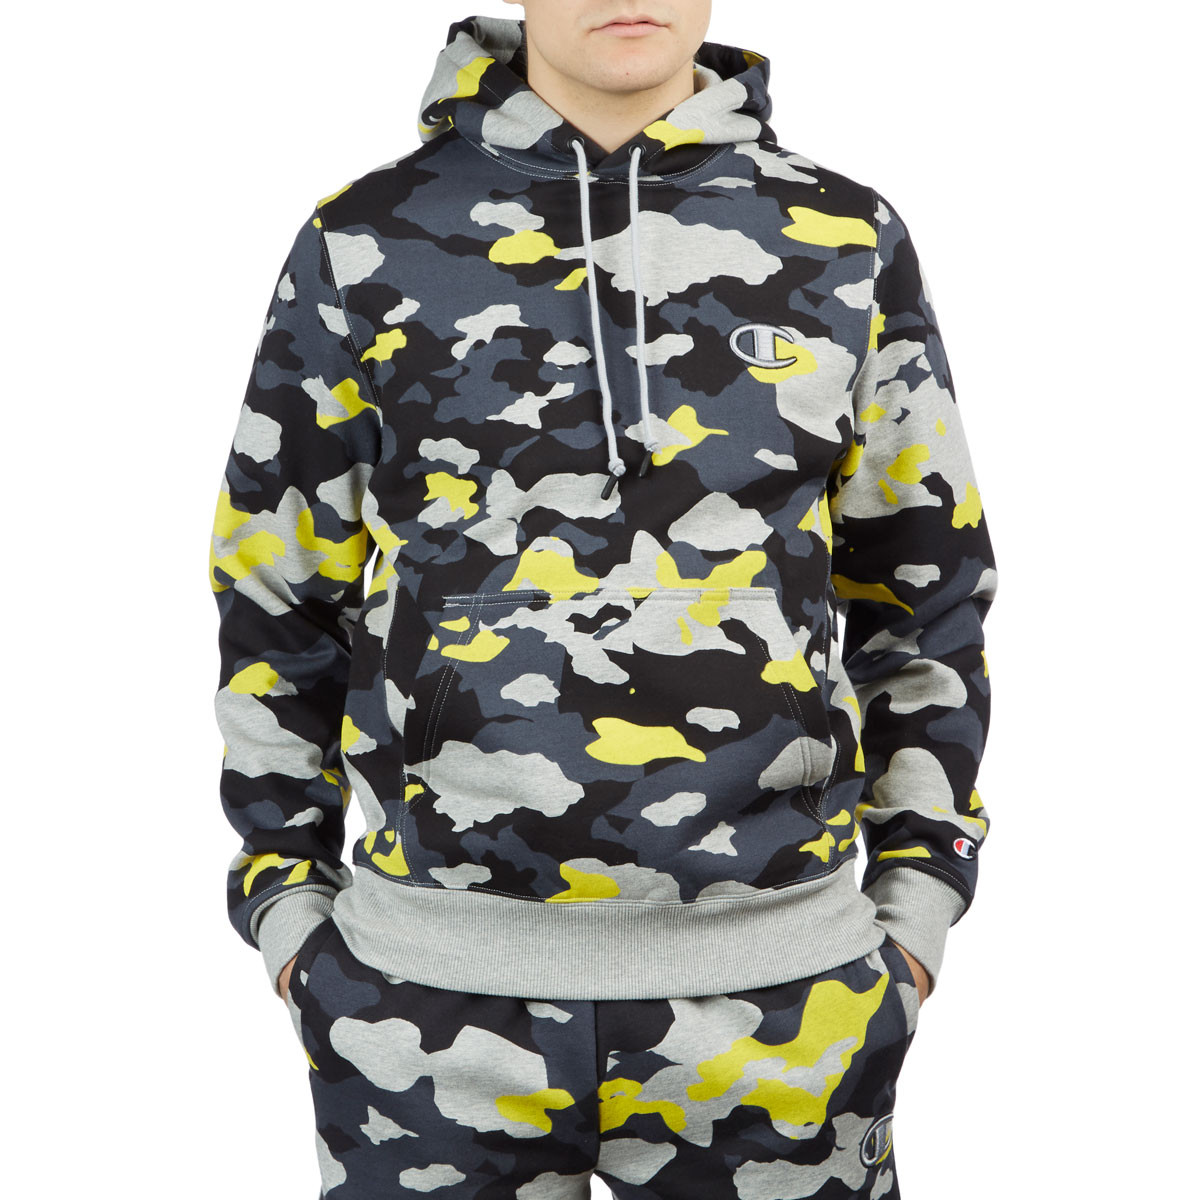 6a2cb7cd02a6 Champion Super Fleece 2.0 Hoodie - Camo Pop Oxford Grey